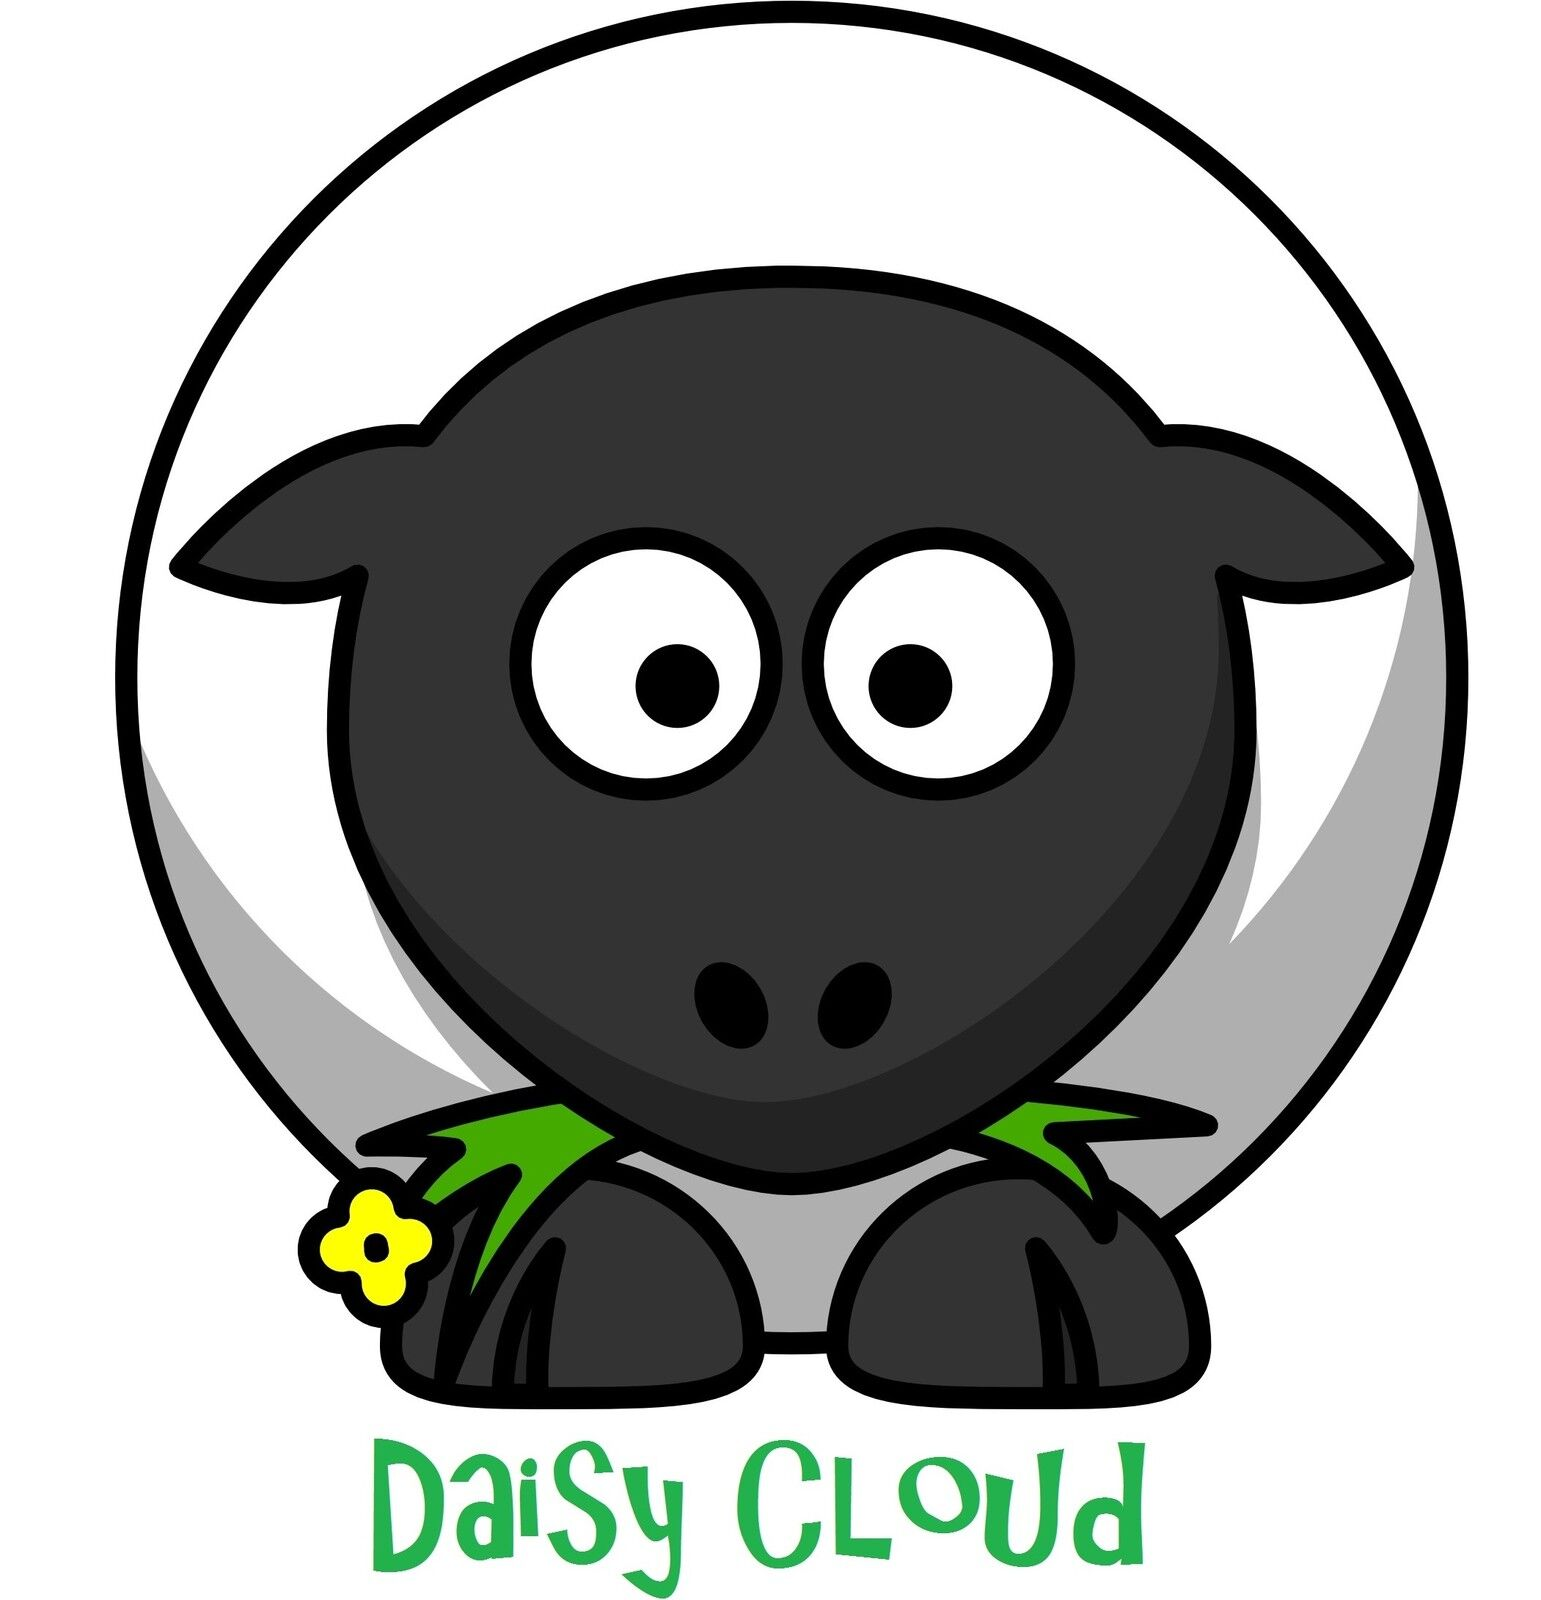 Daisy Cloud Emporium